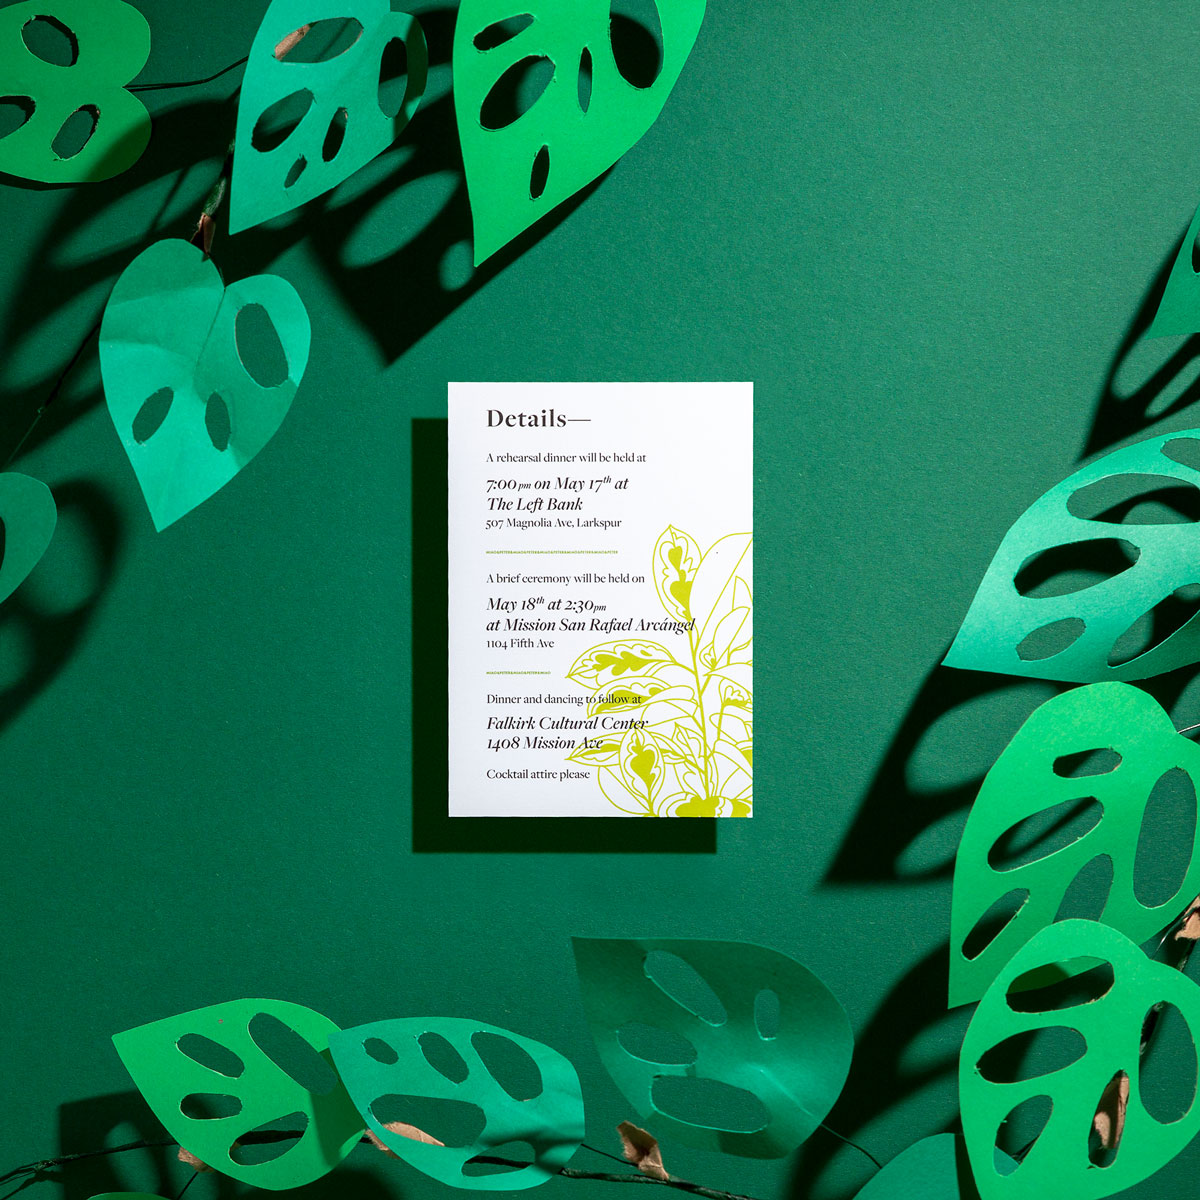 Ephemora's Ficus info card uses modern illustrations to accent your wedding details.